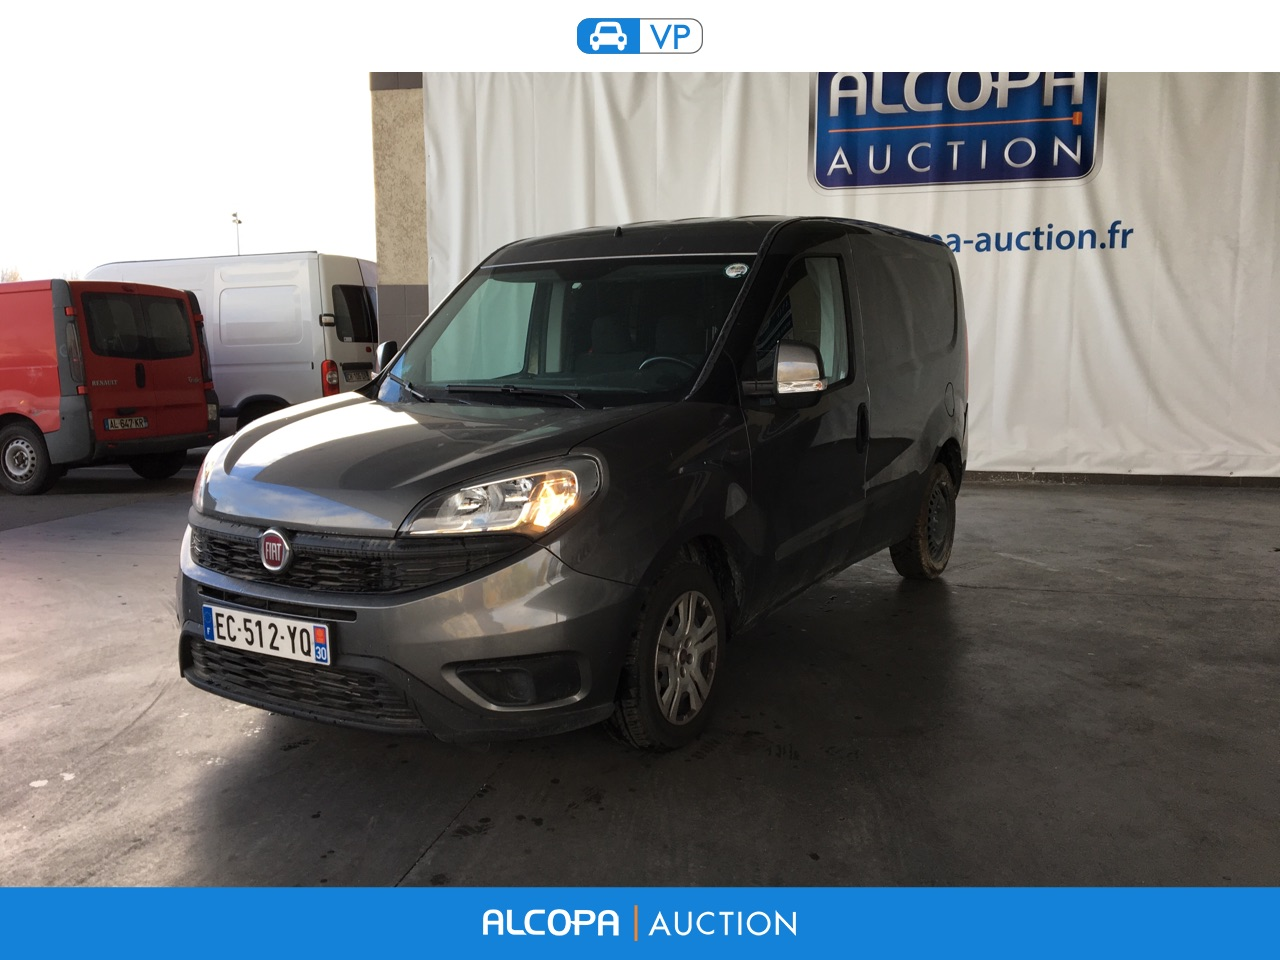 fiat doblo doblo cargo 1 6l mjt 90 pack professional bva lyon alcopa auction. Black Bedroom Furniture Sets. Home Design Ideas